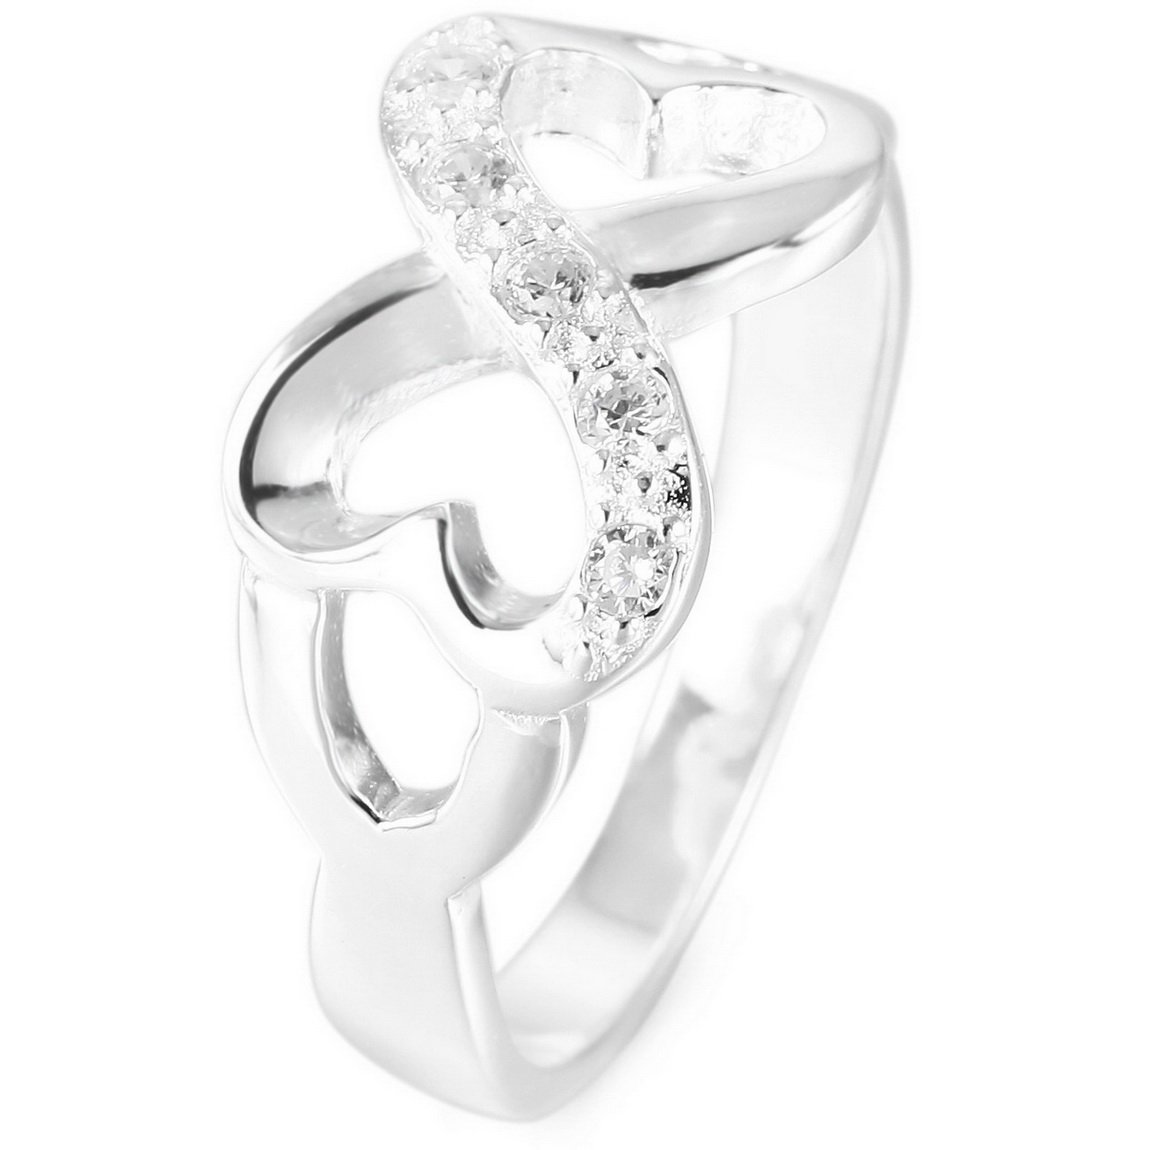 INBLUE Women's 925 Sterling Silver Ring CZ Heart Infinity Symbol Wedding Band INBLUE Jewelry mnf0012-parent